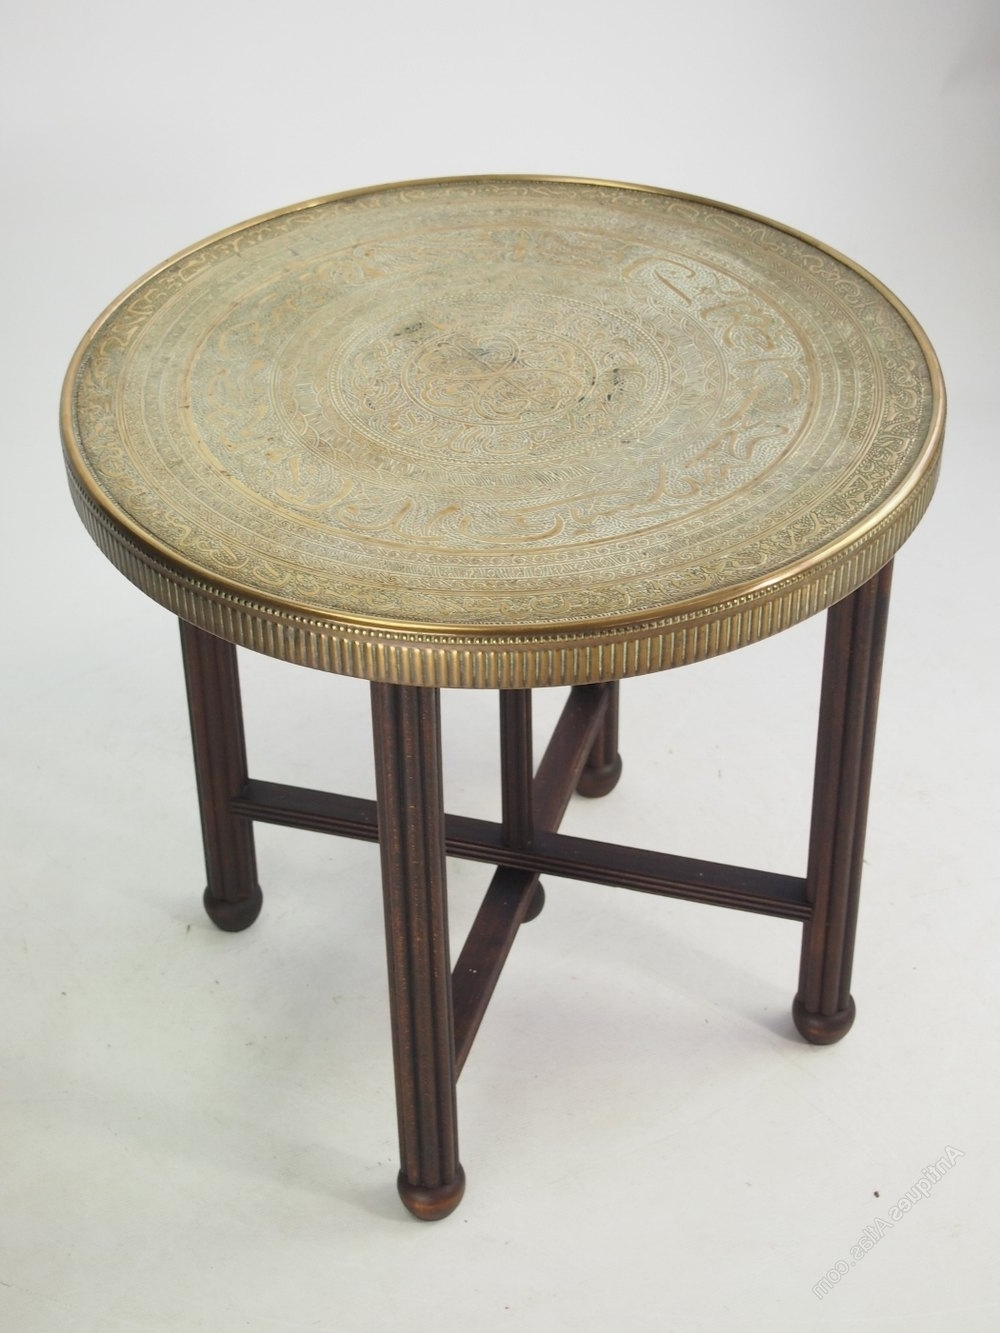 Most Popular Antique Brass Coffee Tables Regarding Berber Benares Brass Tray Top Coffee Table – Antiques Atlas (View 4 of 20)